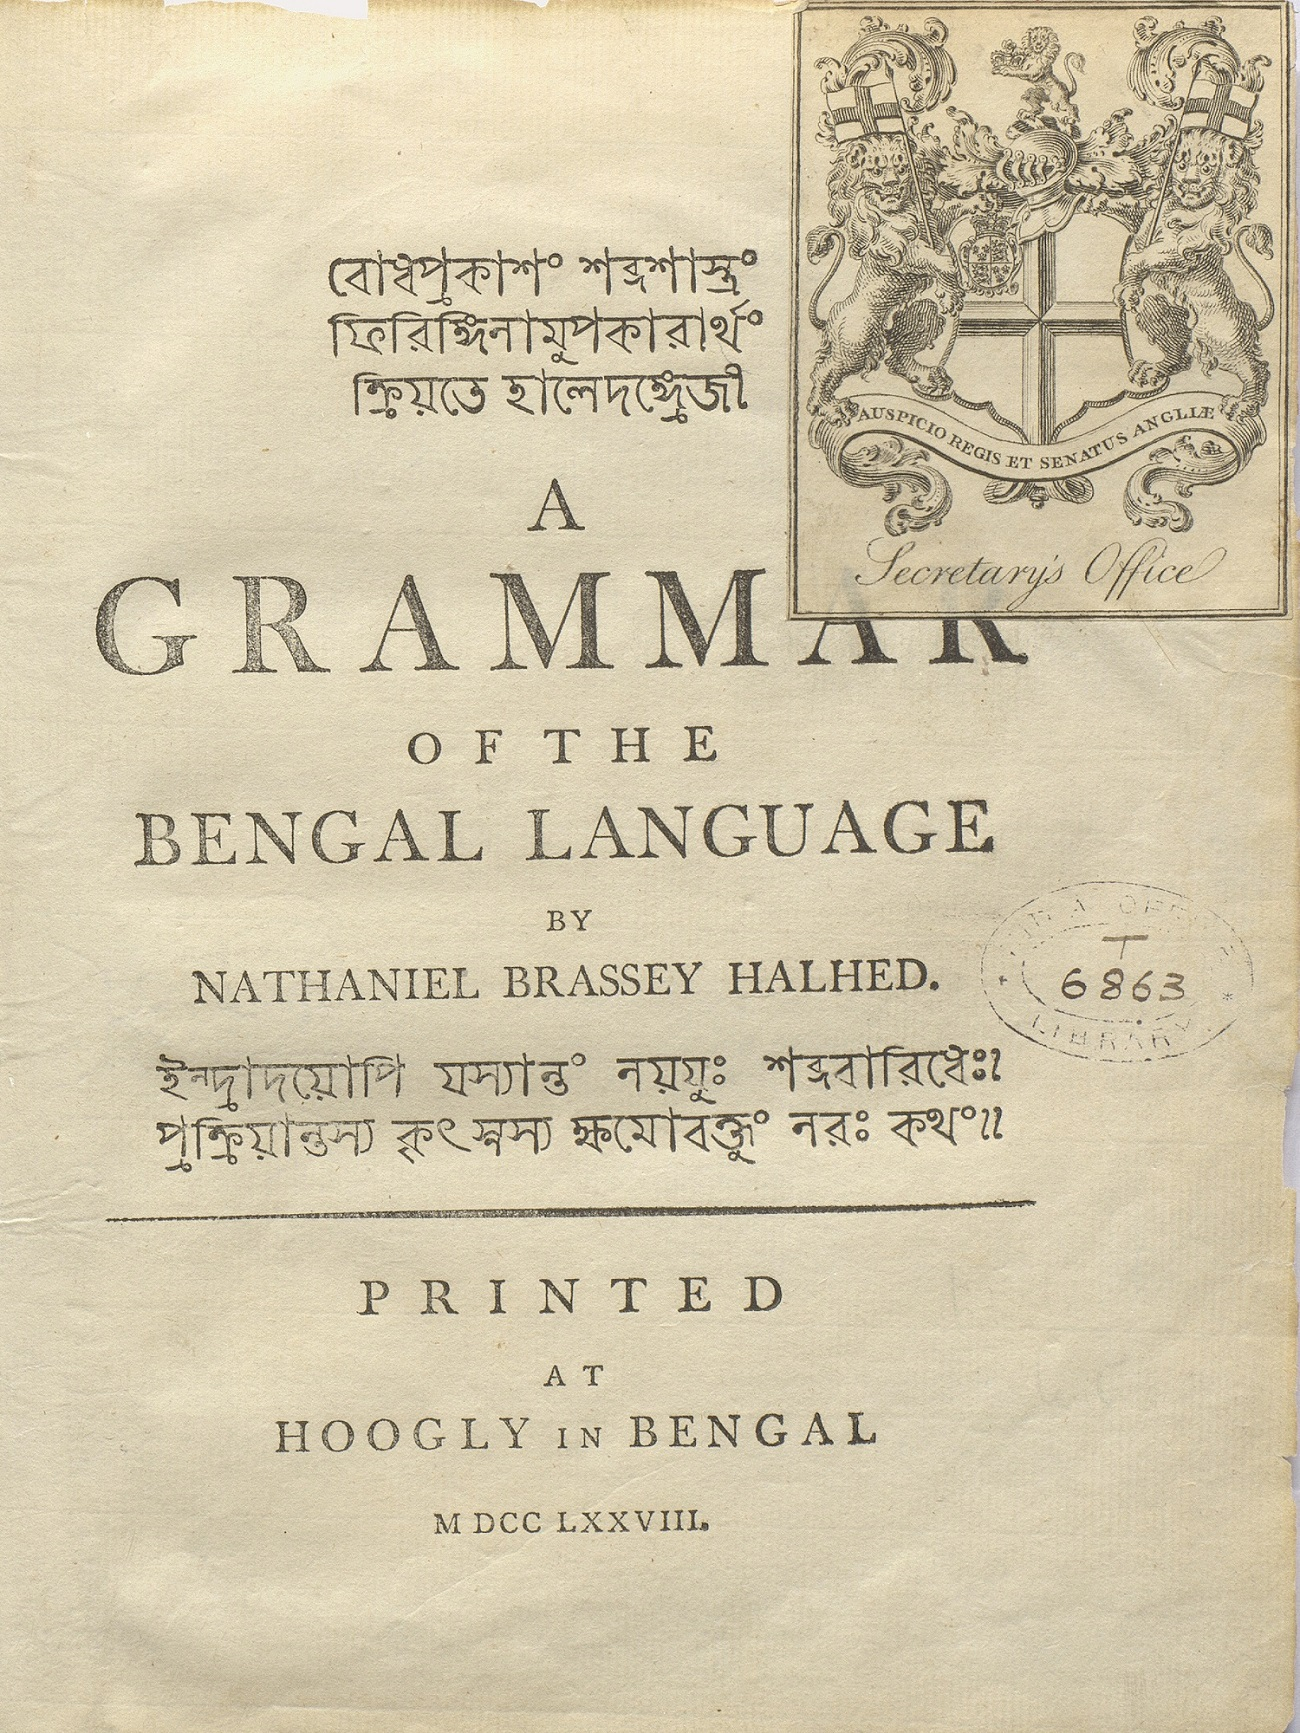 Two Bengali grammars – a typographic perspective - The